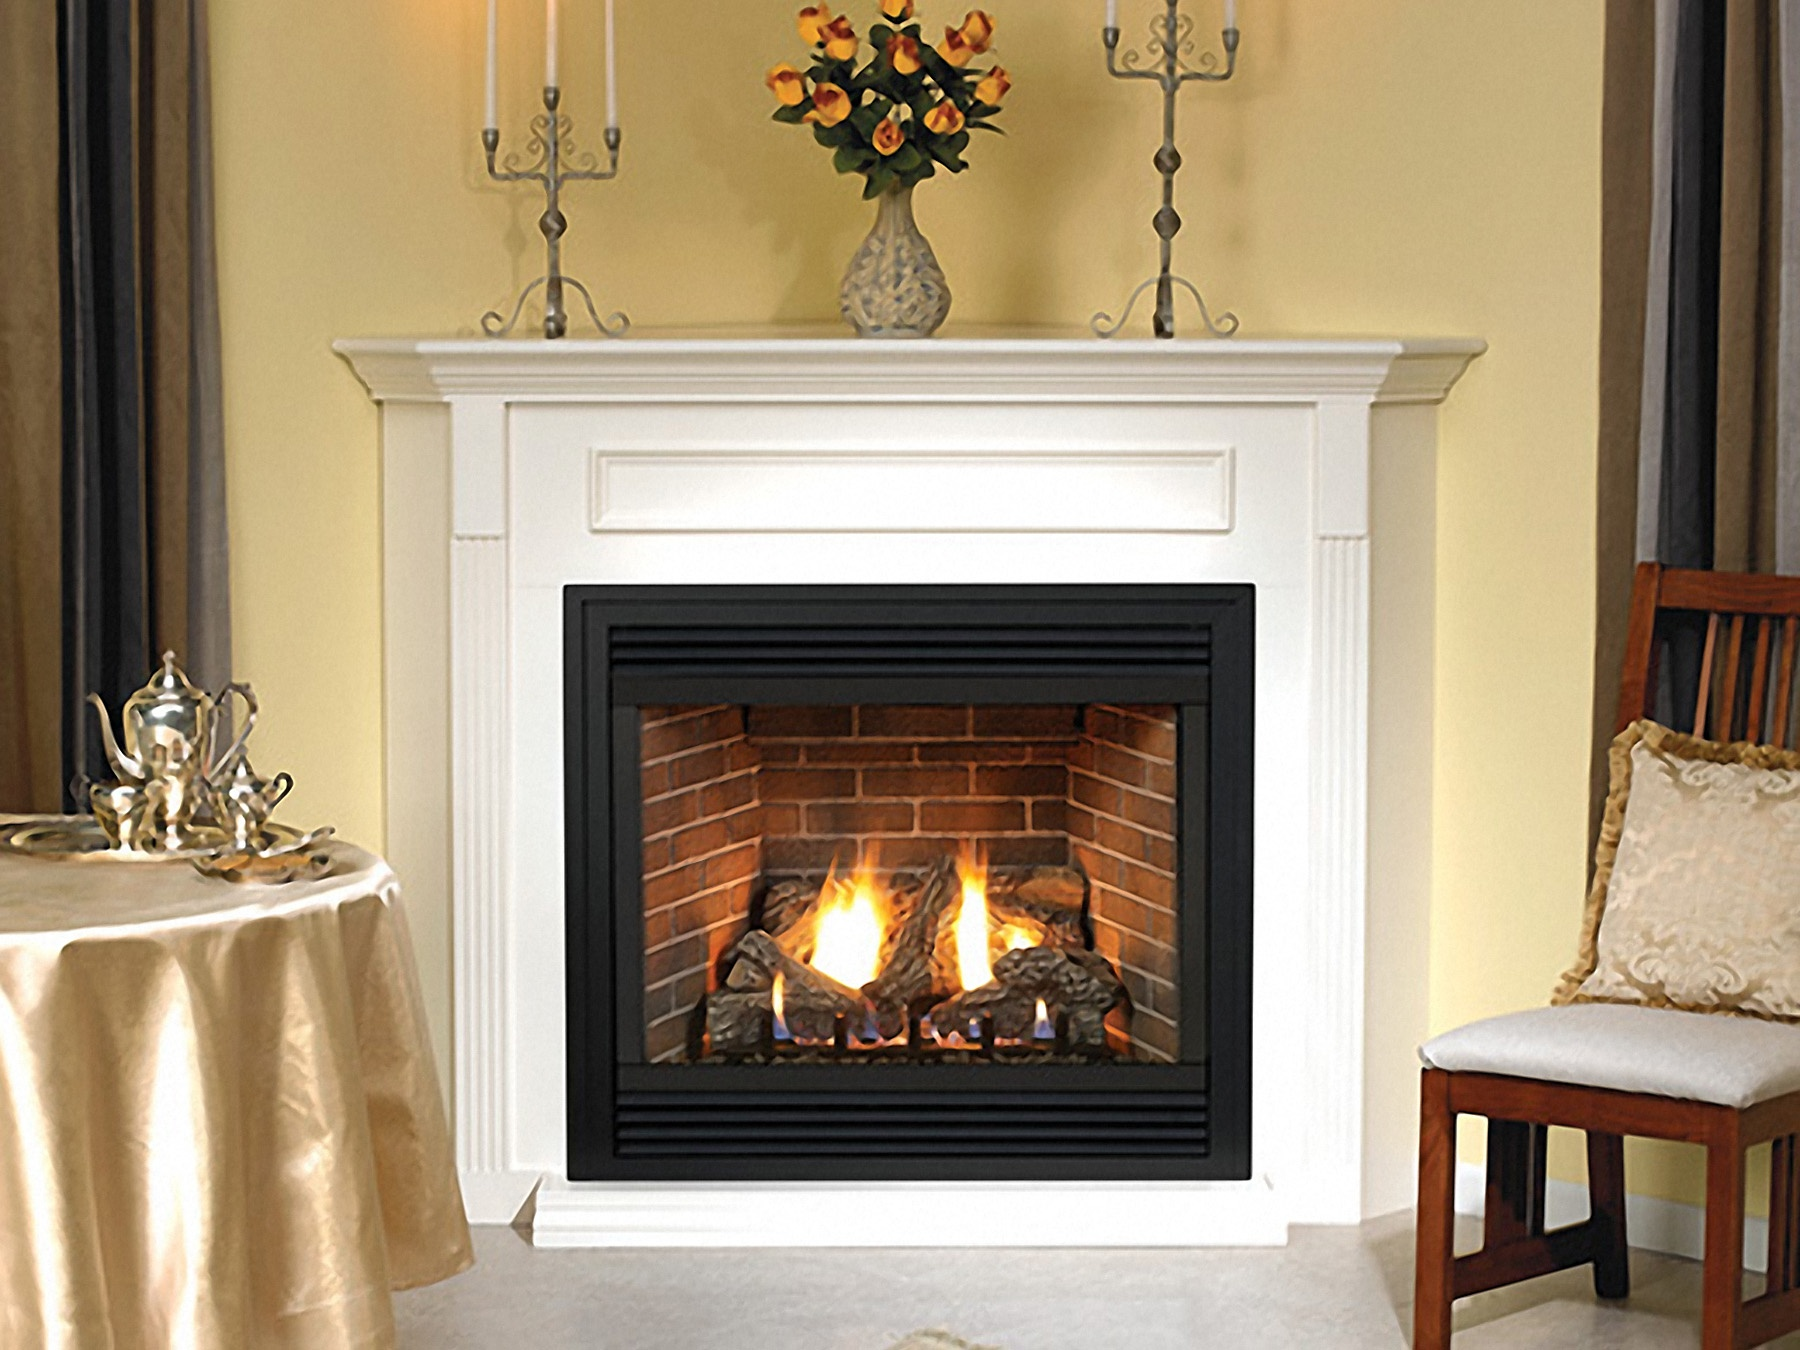 Gas Hearth Products Contractor and Retail plus Handyman Services